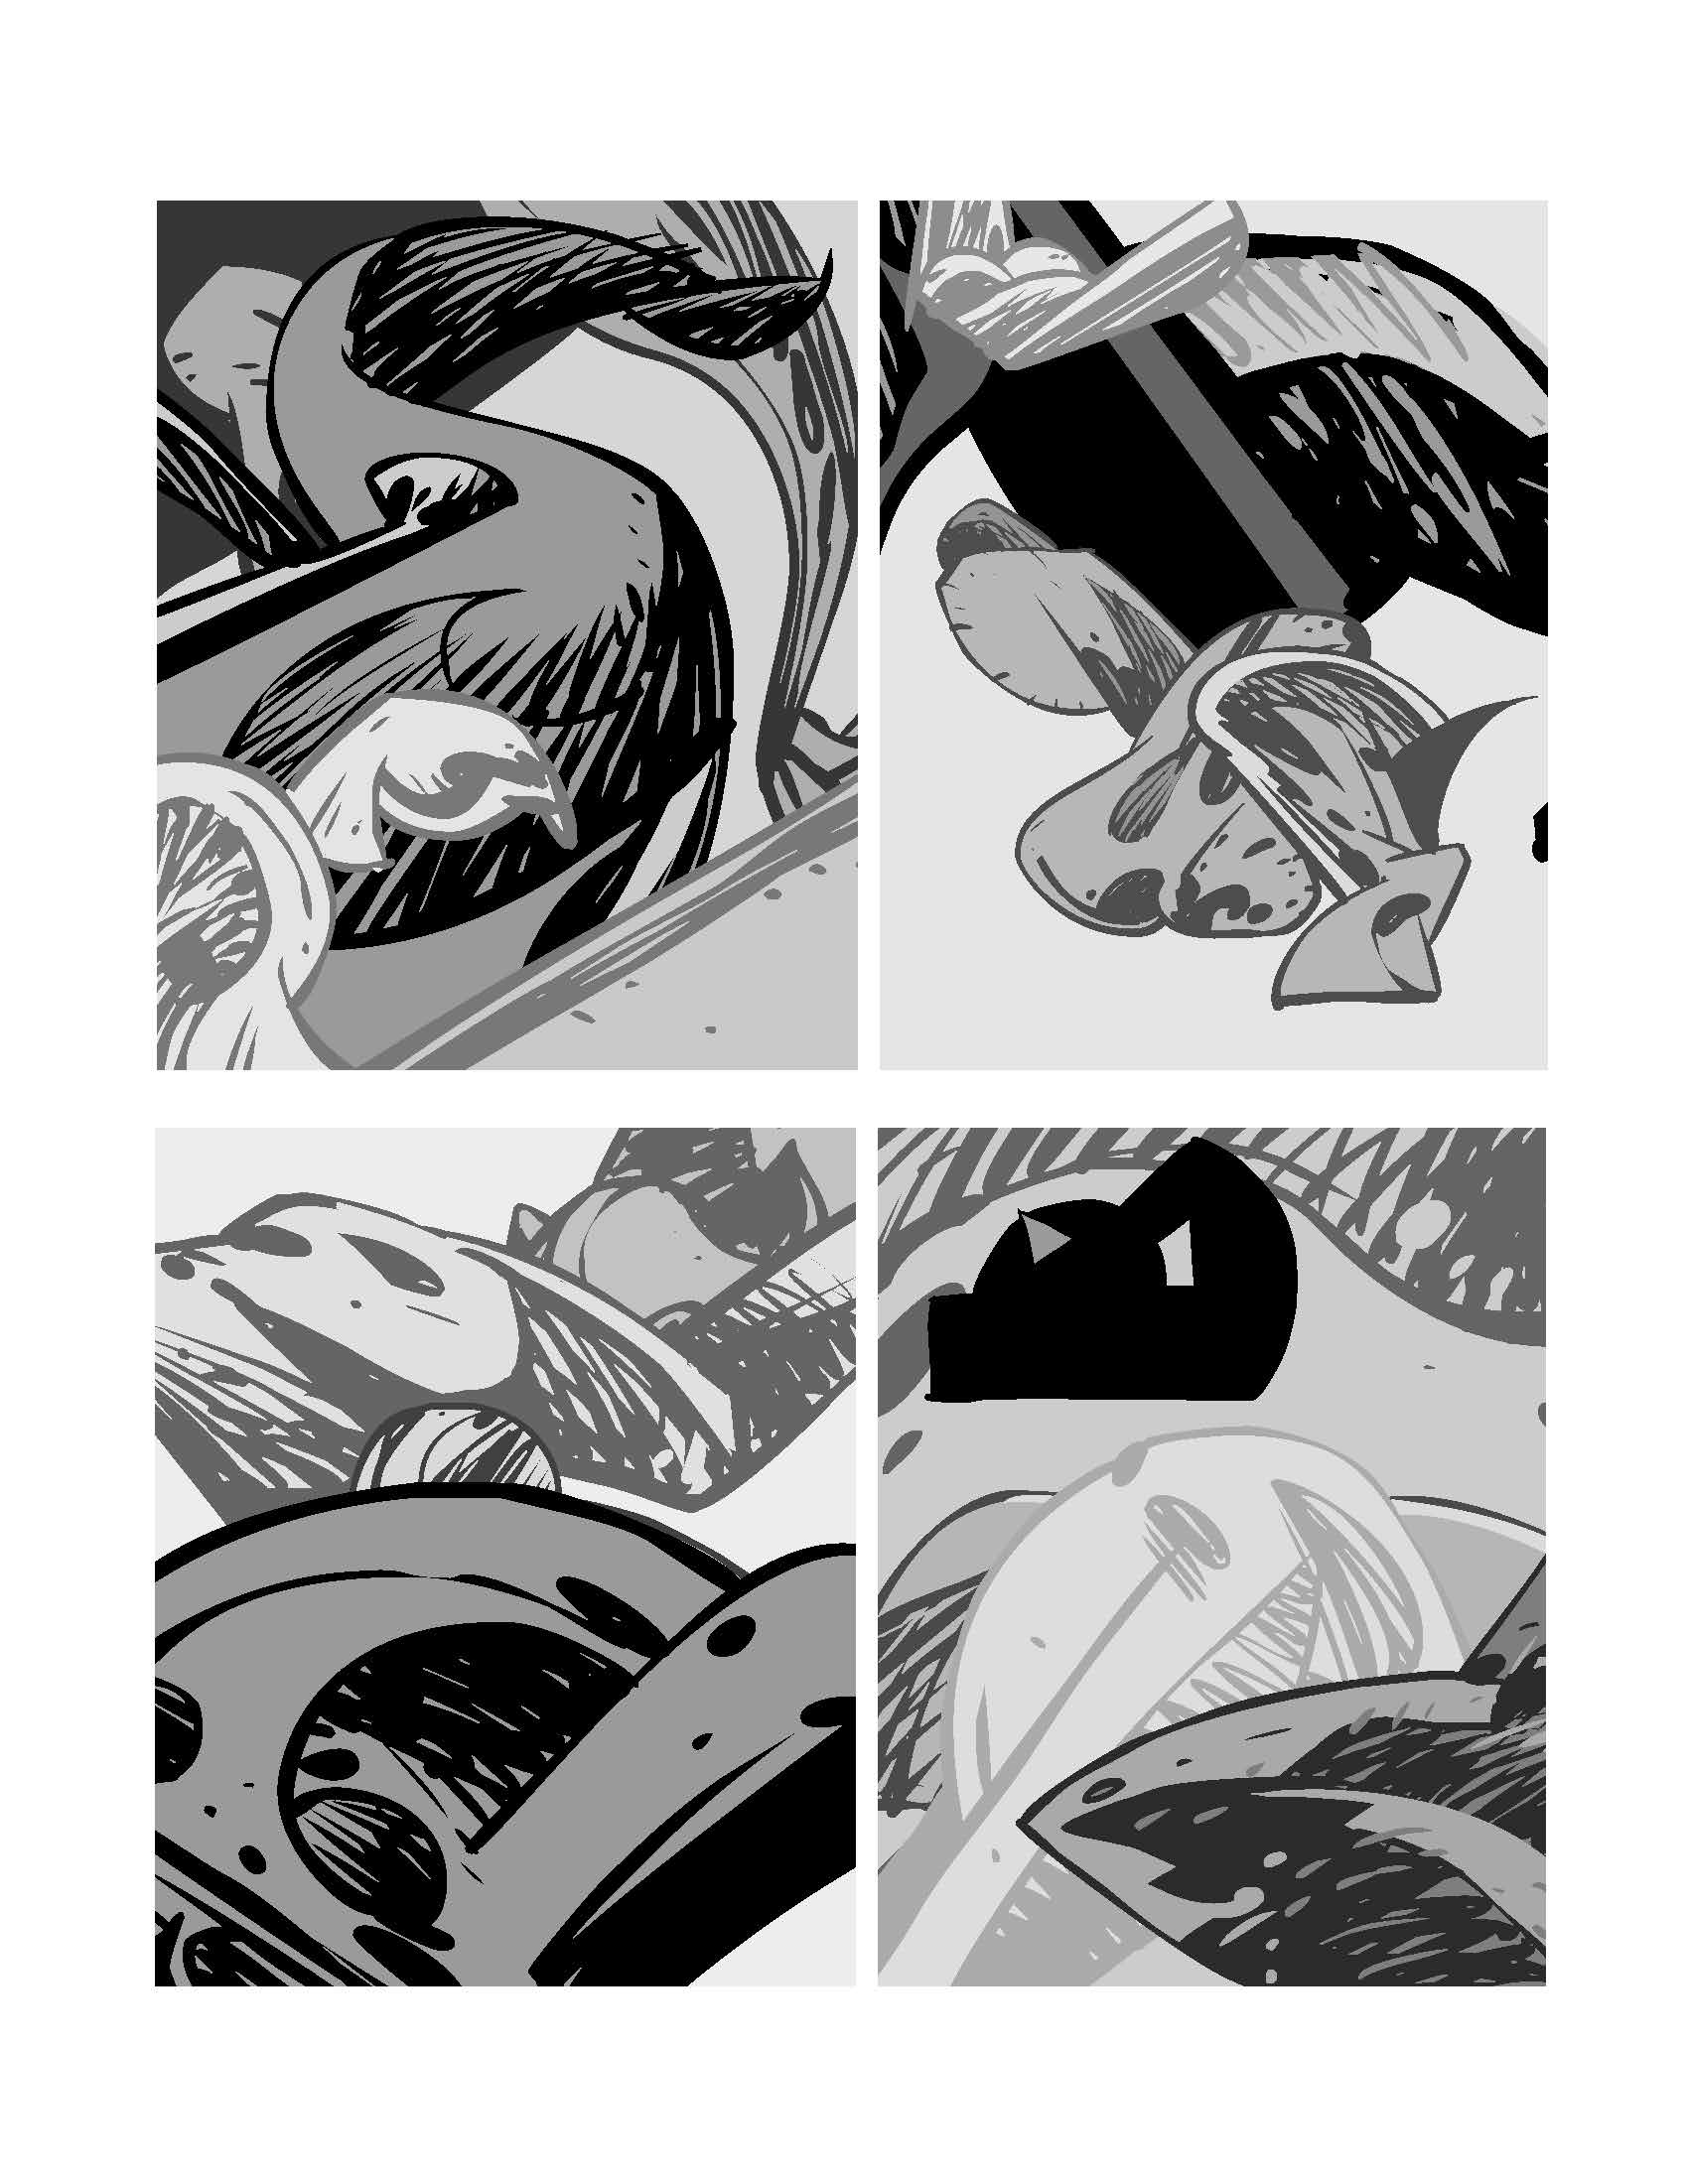 Abstract Kirby 1 pg 18